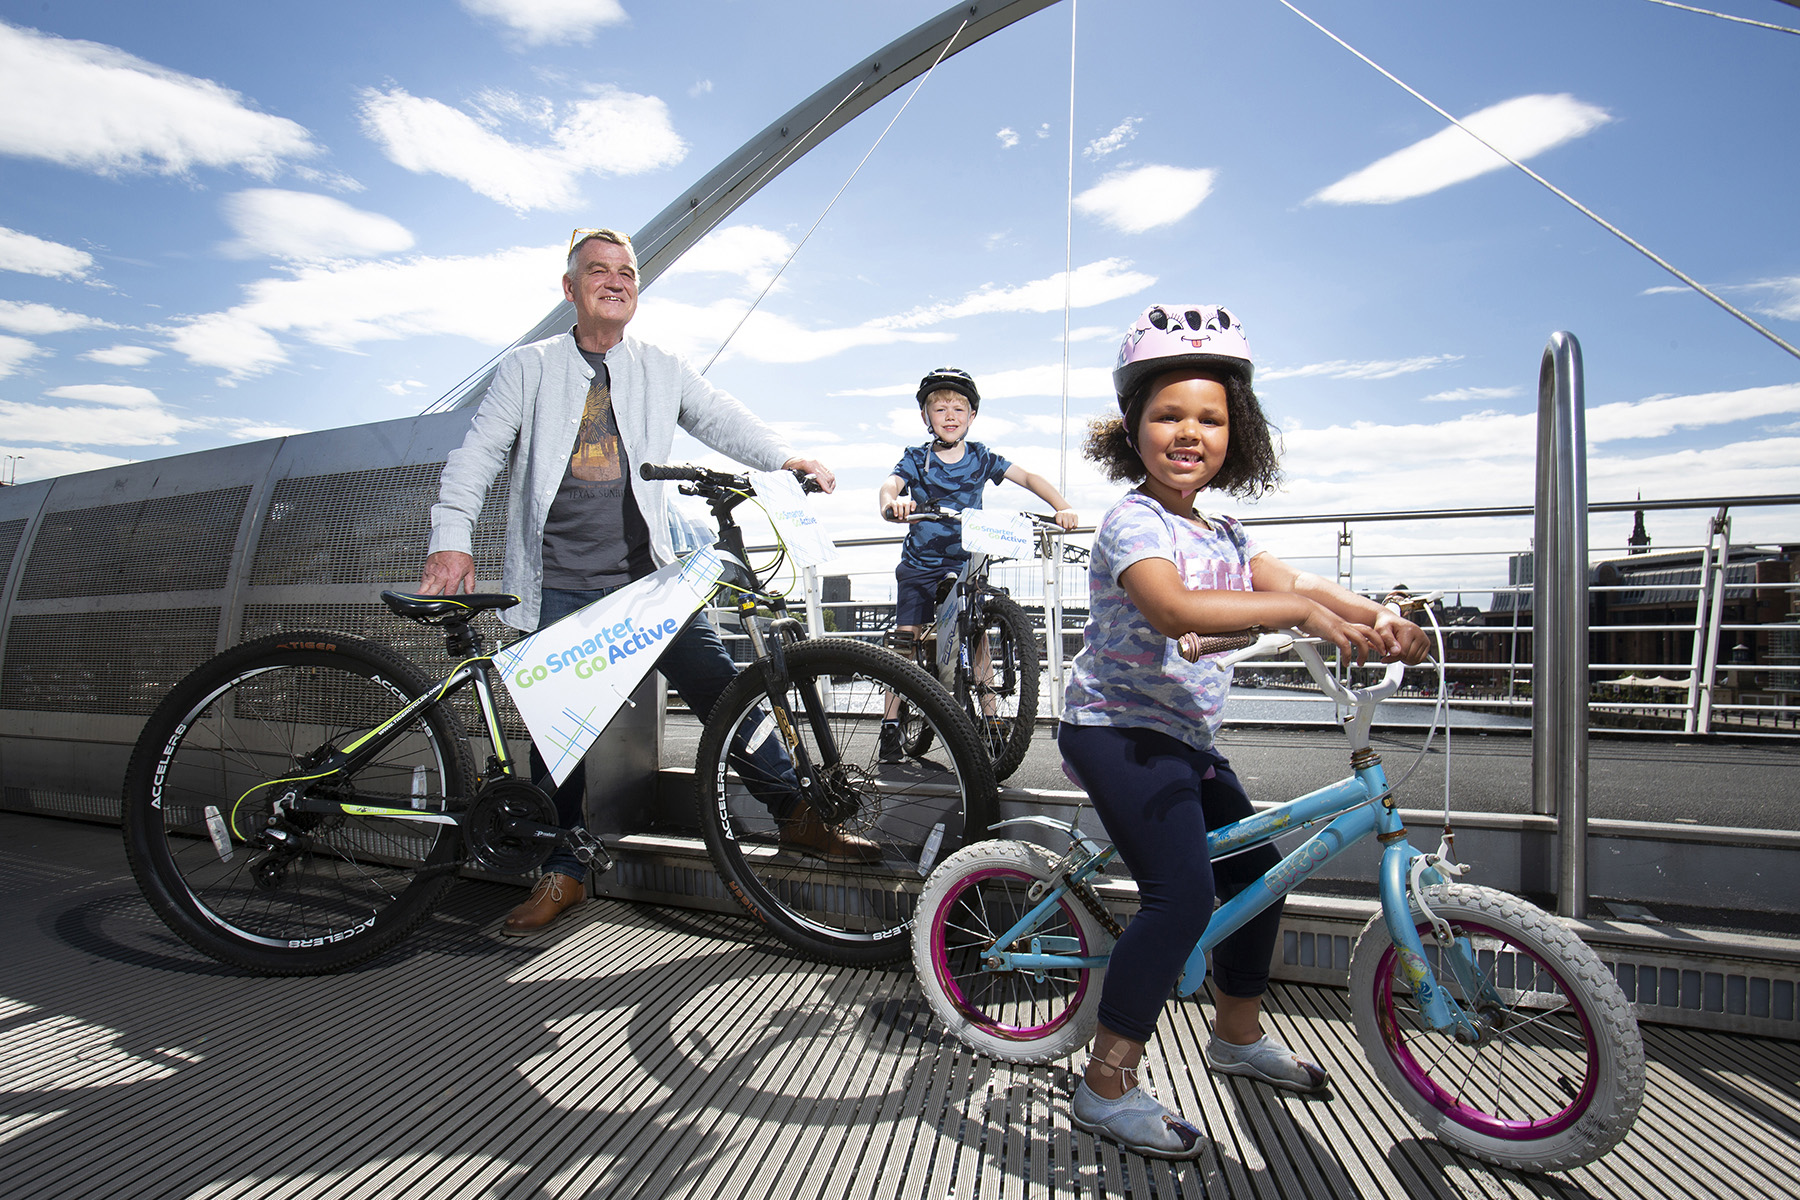 On your marks, get set… cycle! Go Smarter, Go Active Roadshow bookings OPEN